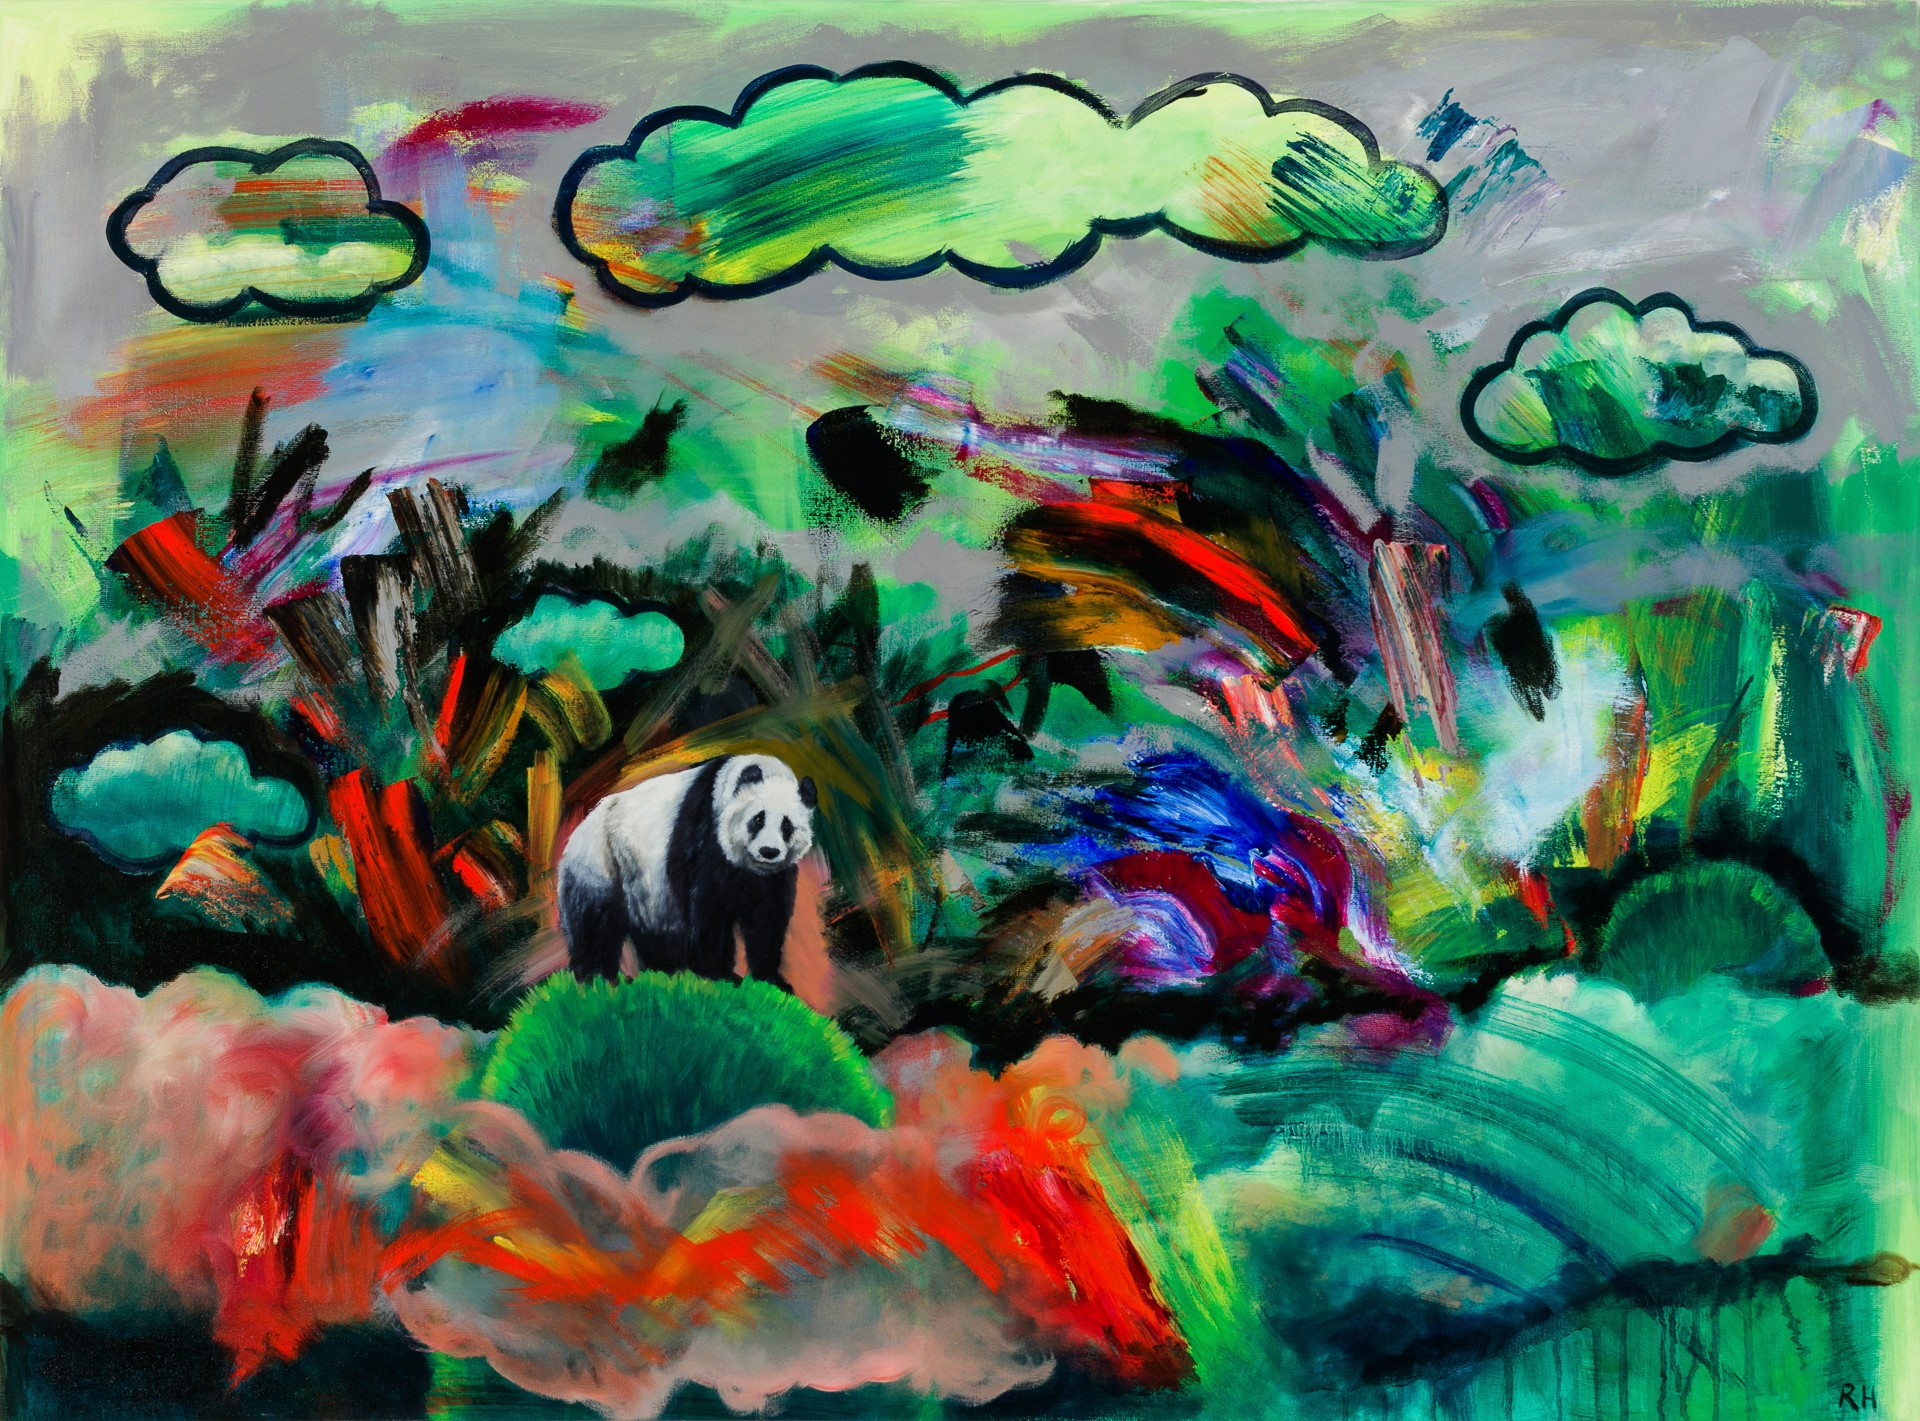 Panda in the Clouds by Robin Hextrum